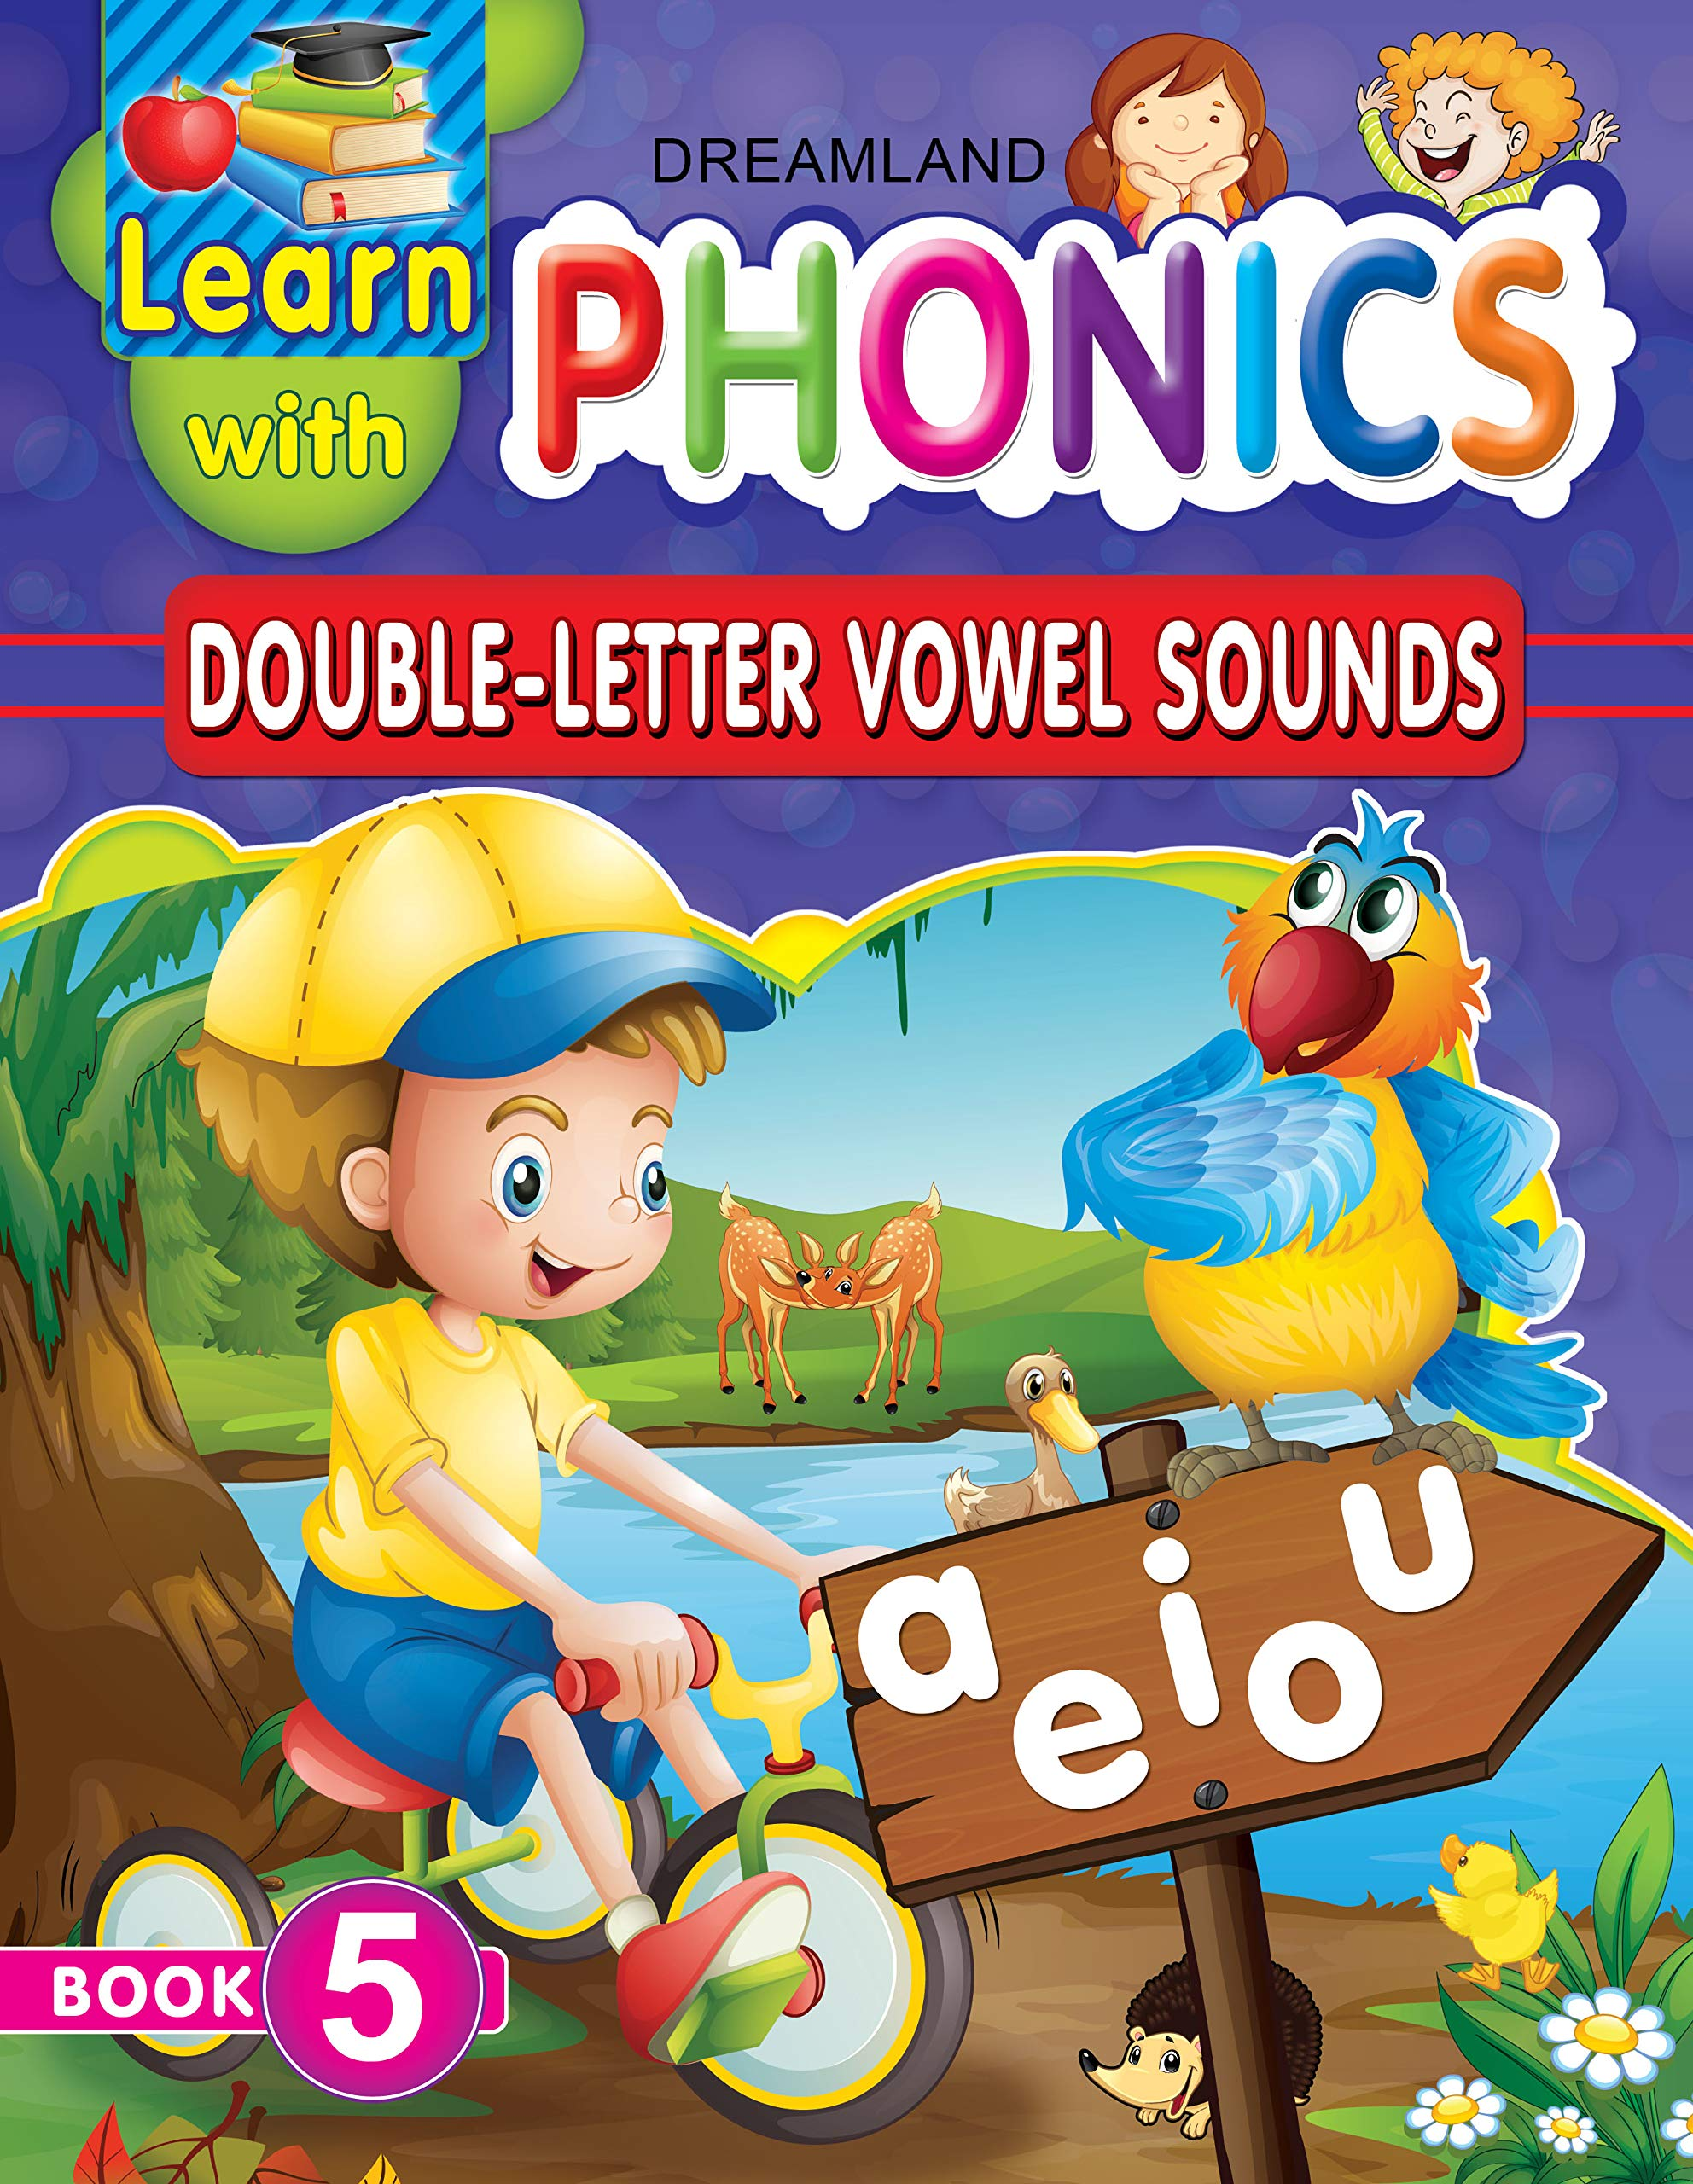 Learn with Phonics (Double-Letter Vowel Sounds)